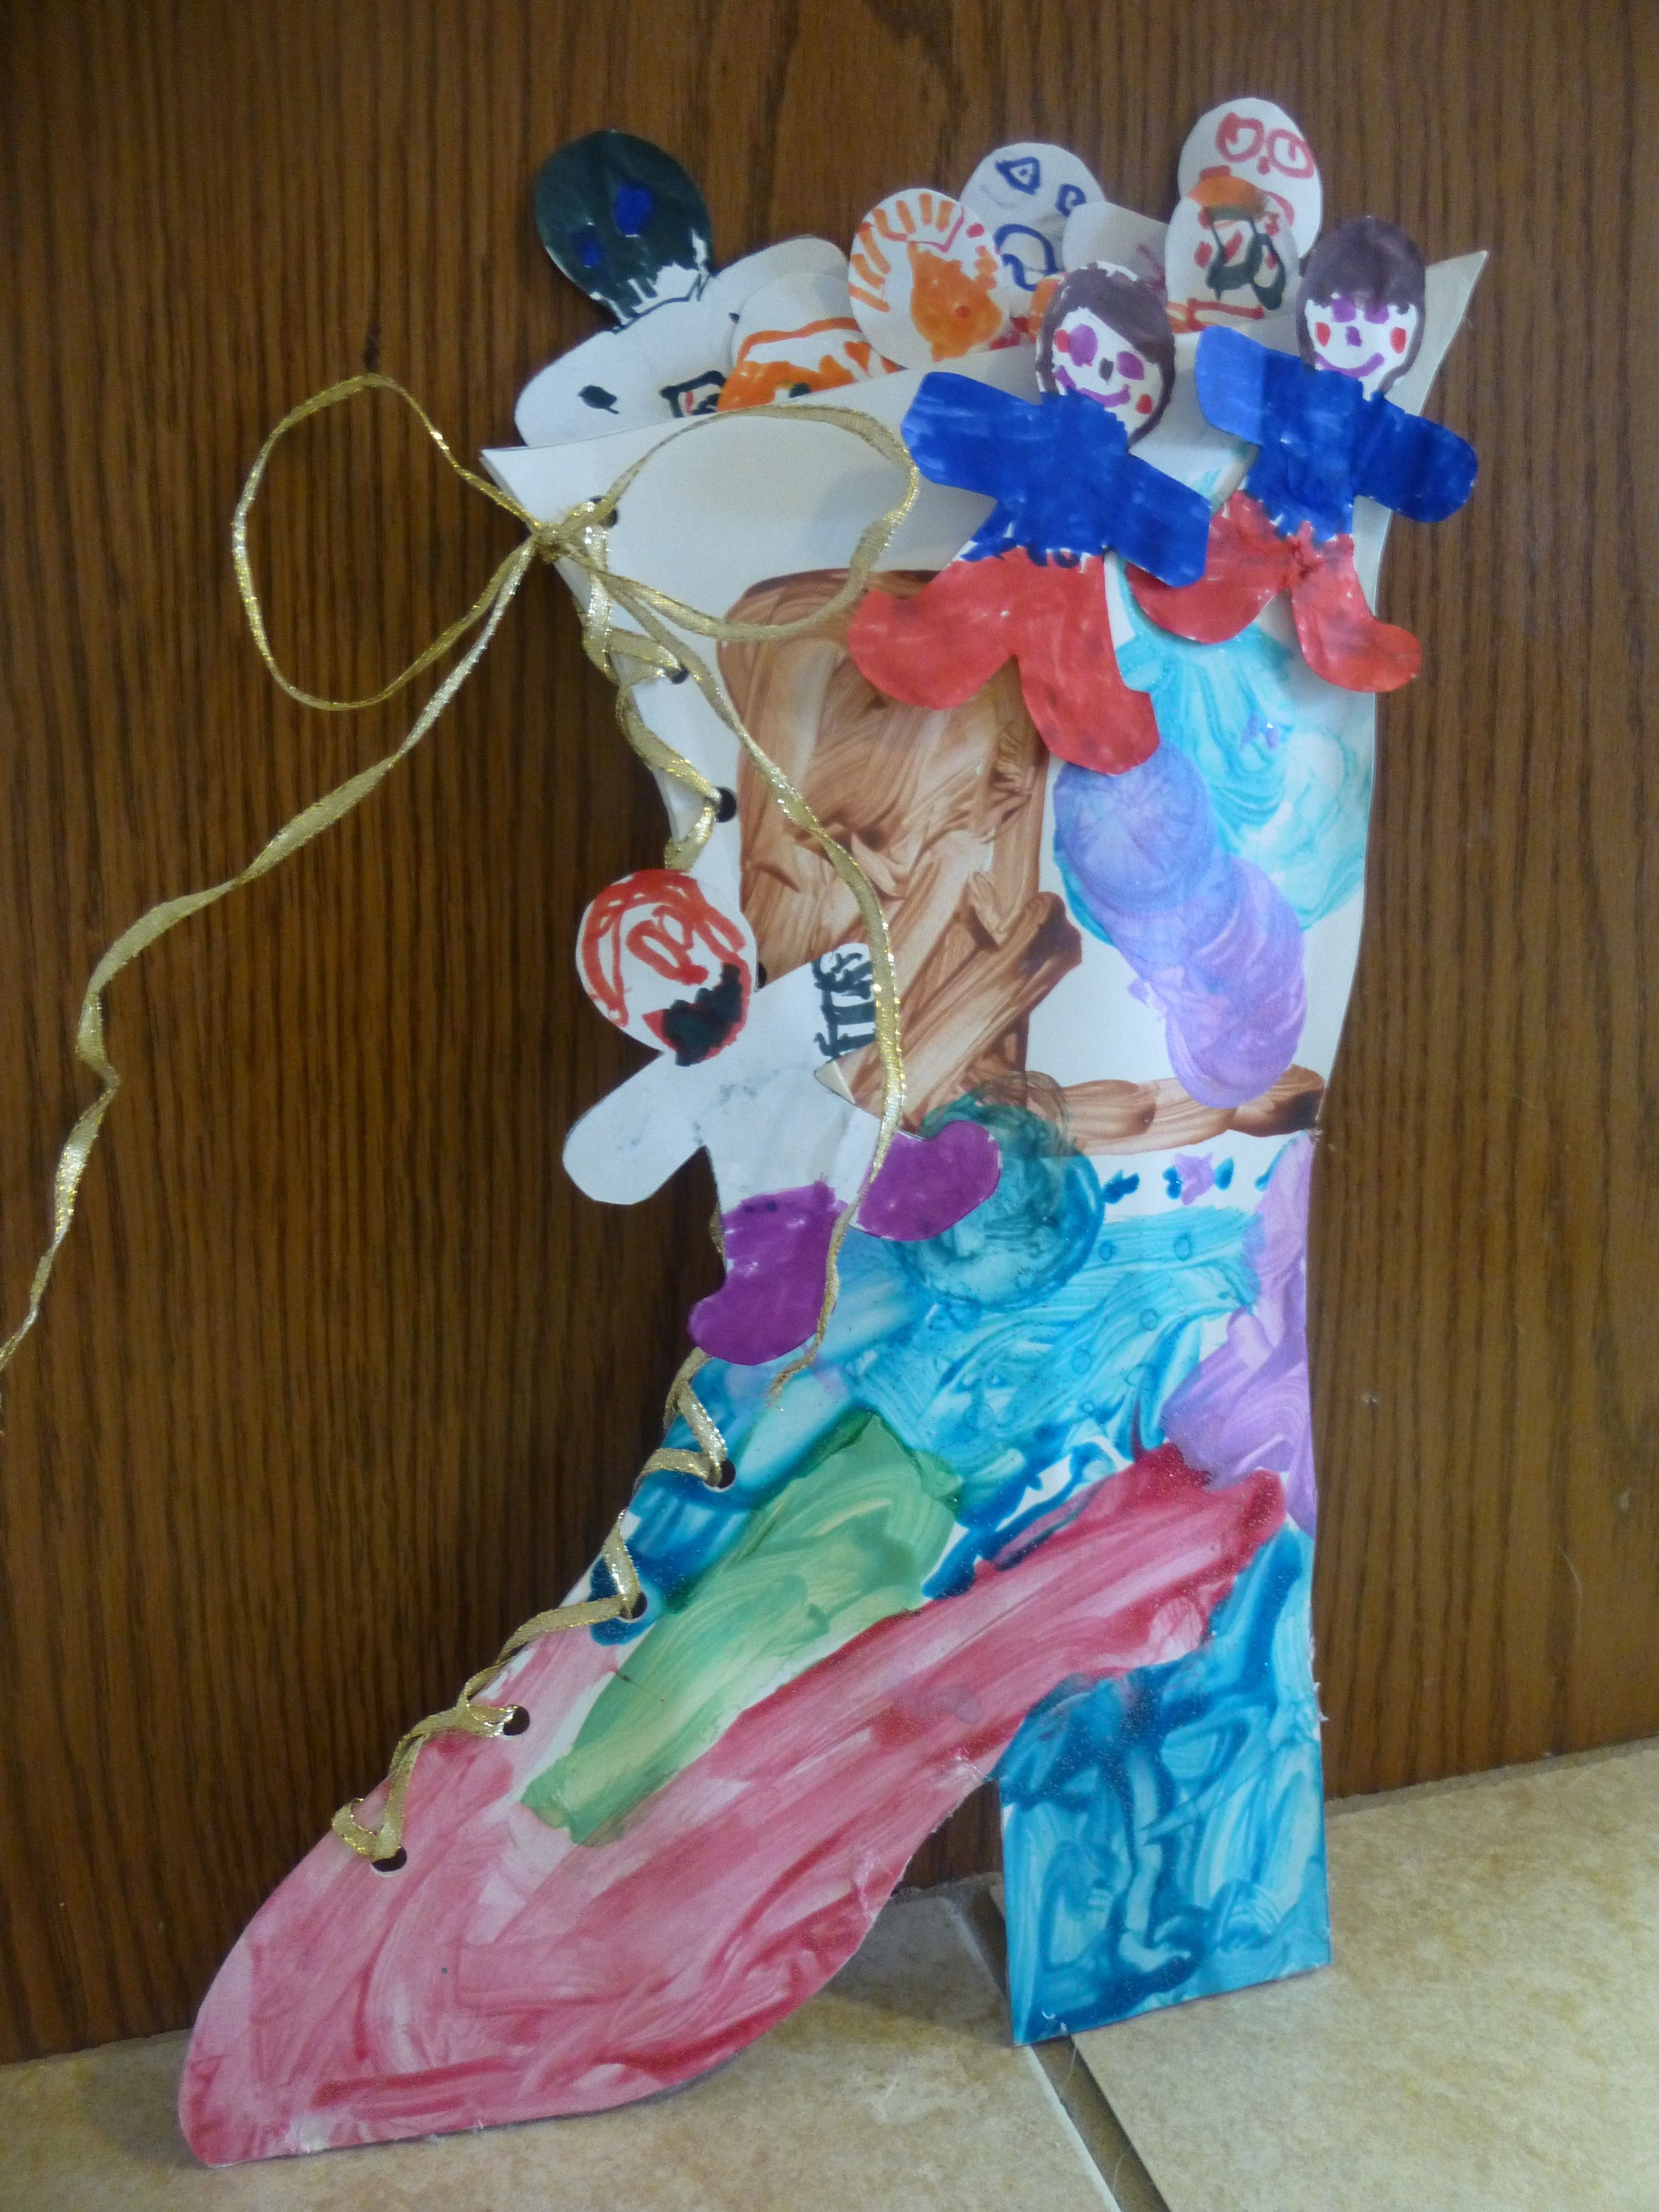 old woman who lived in a shoe | Jacob/Lorelei school | Pinterest ...